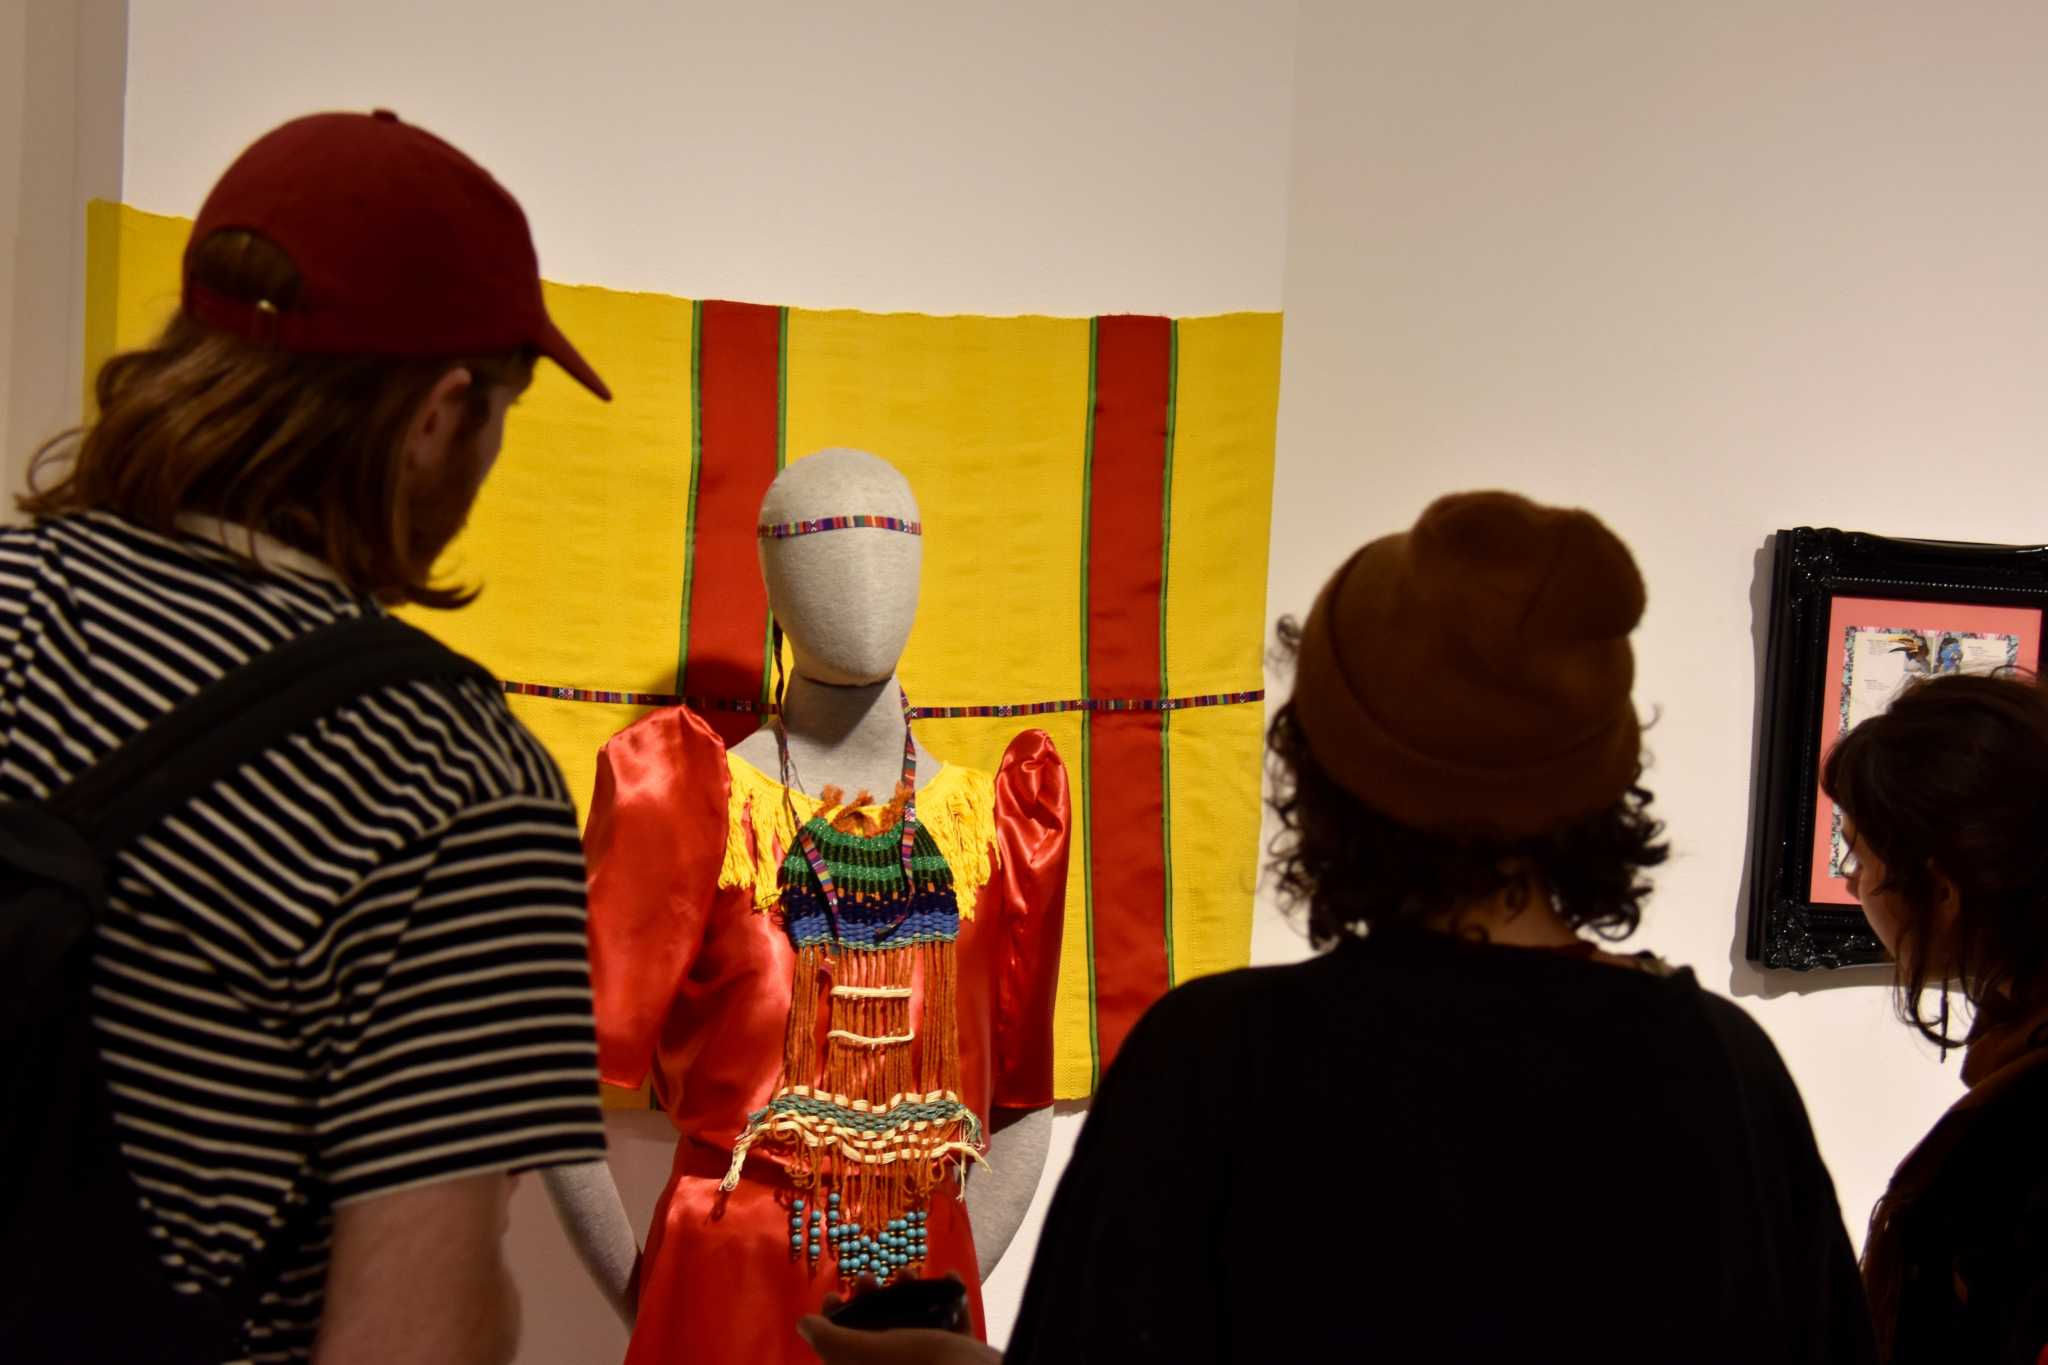 Students look at the art displayed at the ASI Art Gallery at SF State on April 27, 2017. (Tate Drucker/Xpress)